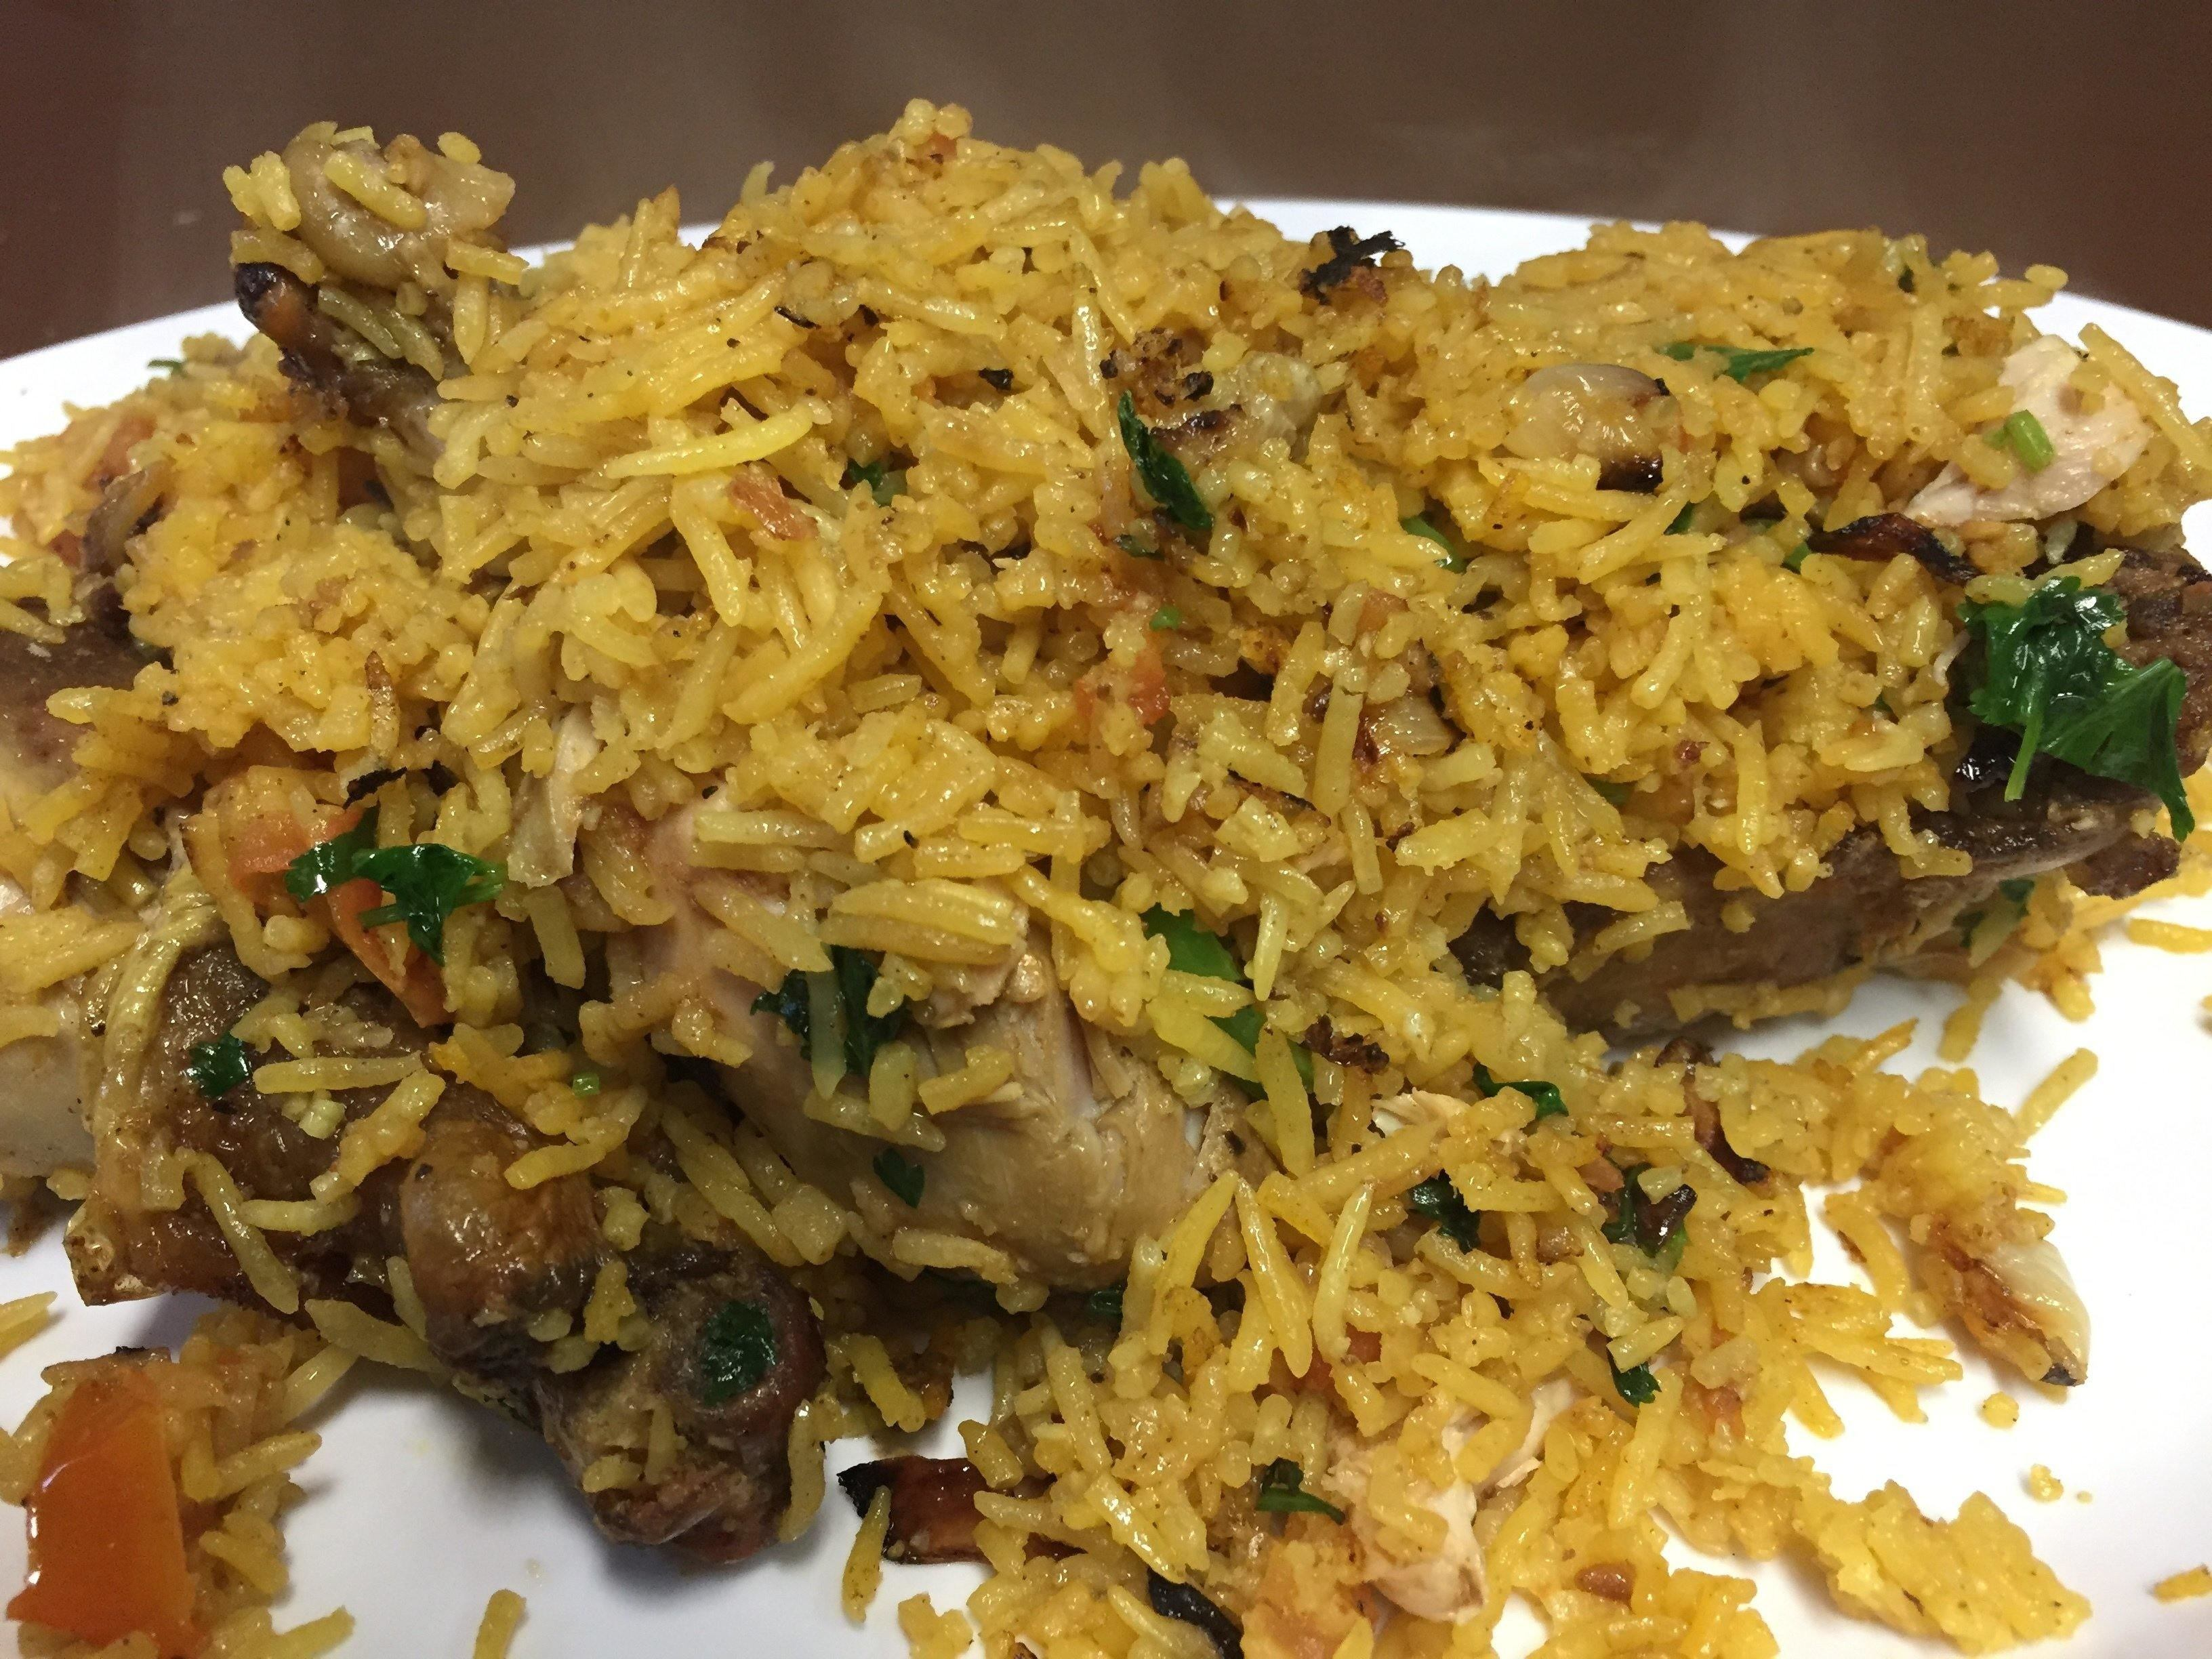 Yemeni food rice dish